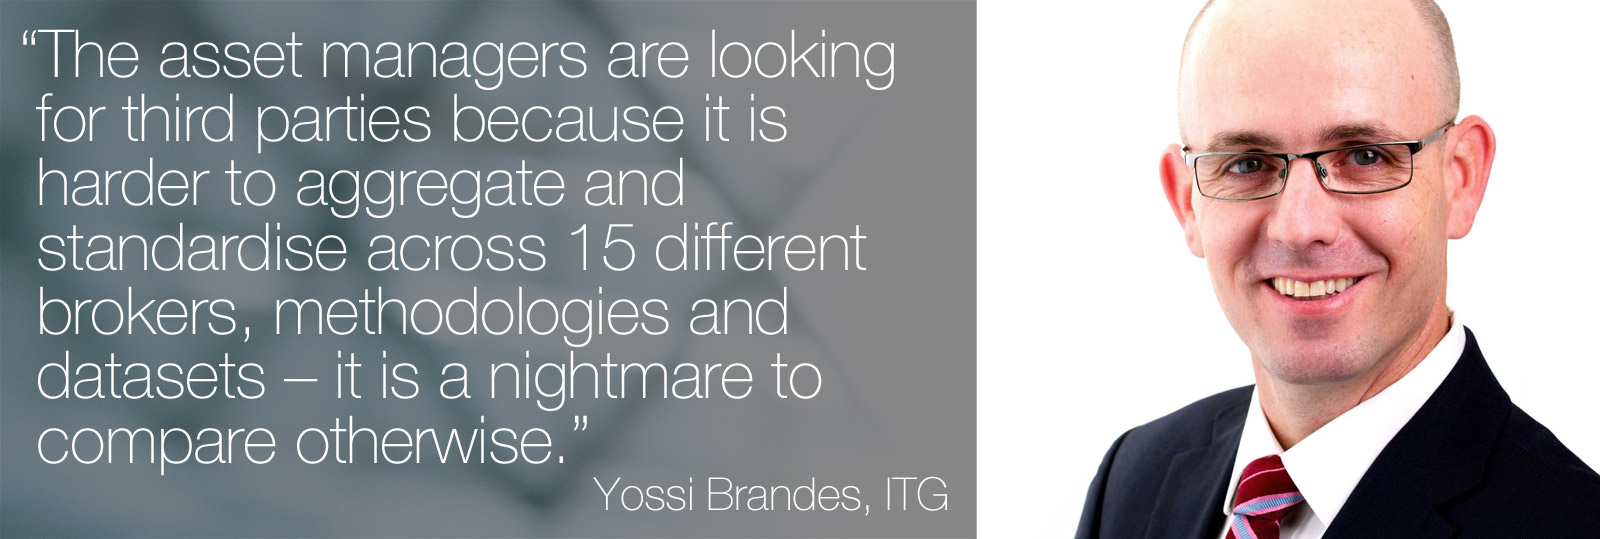 Be28_ITG_Yossi-Brandes_1600x539